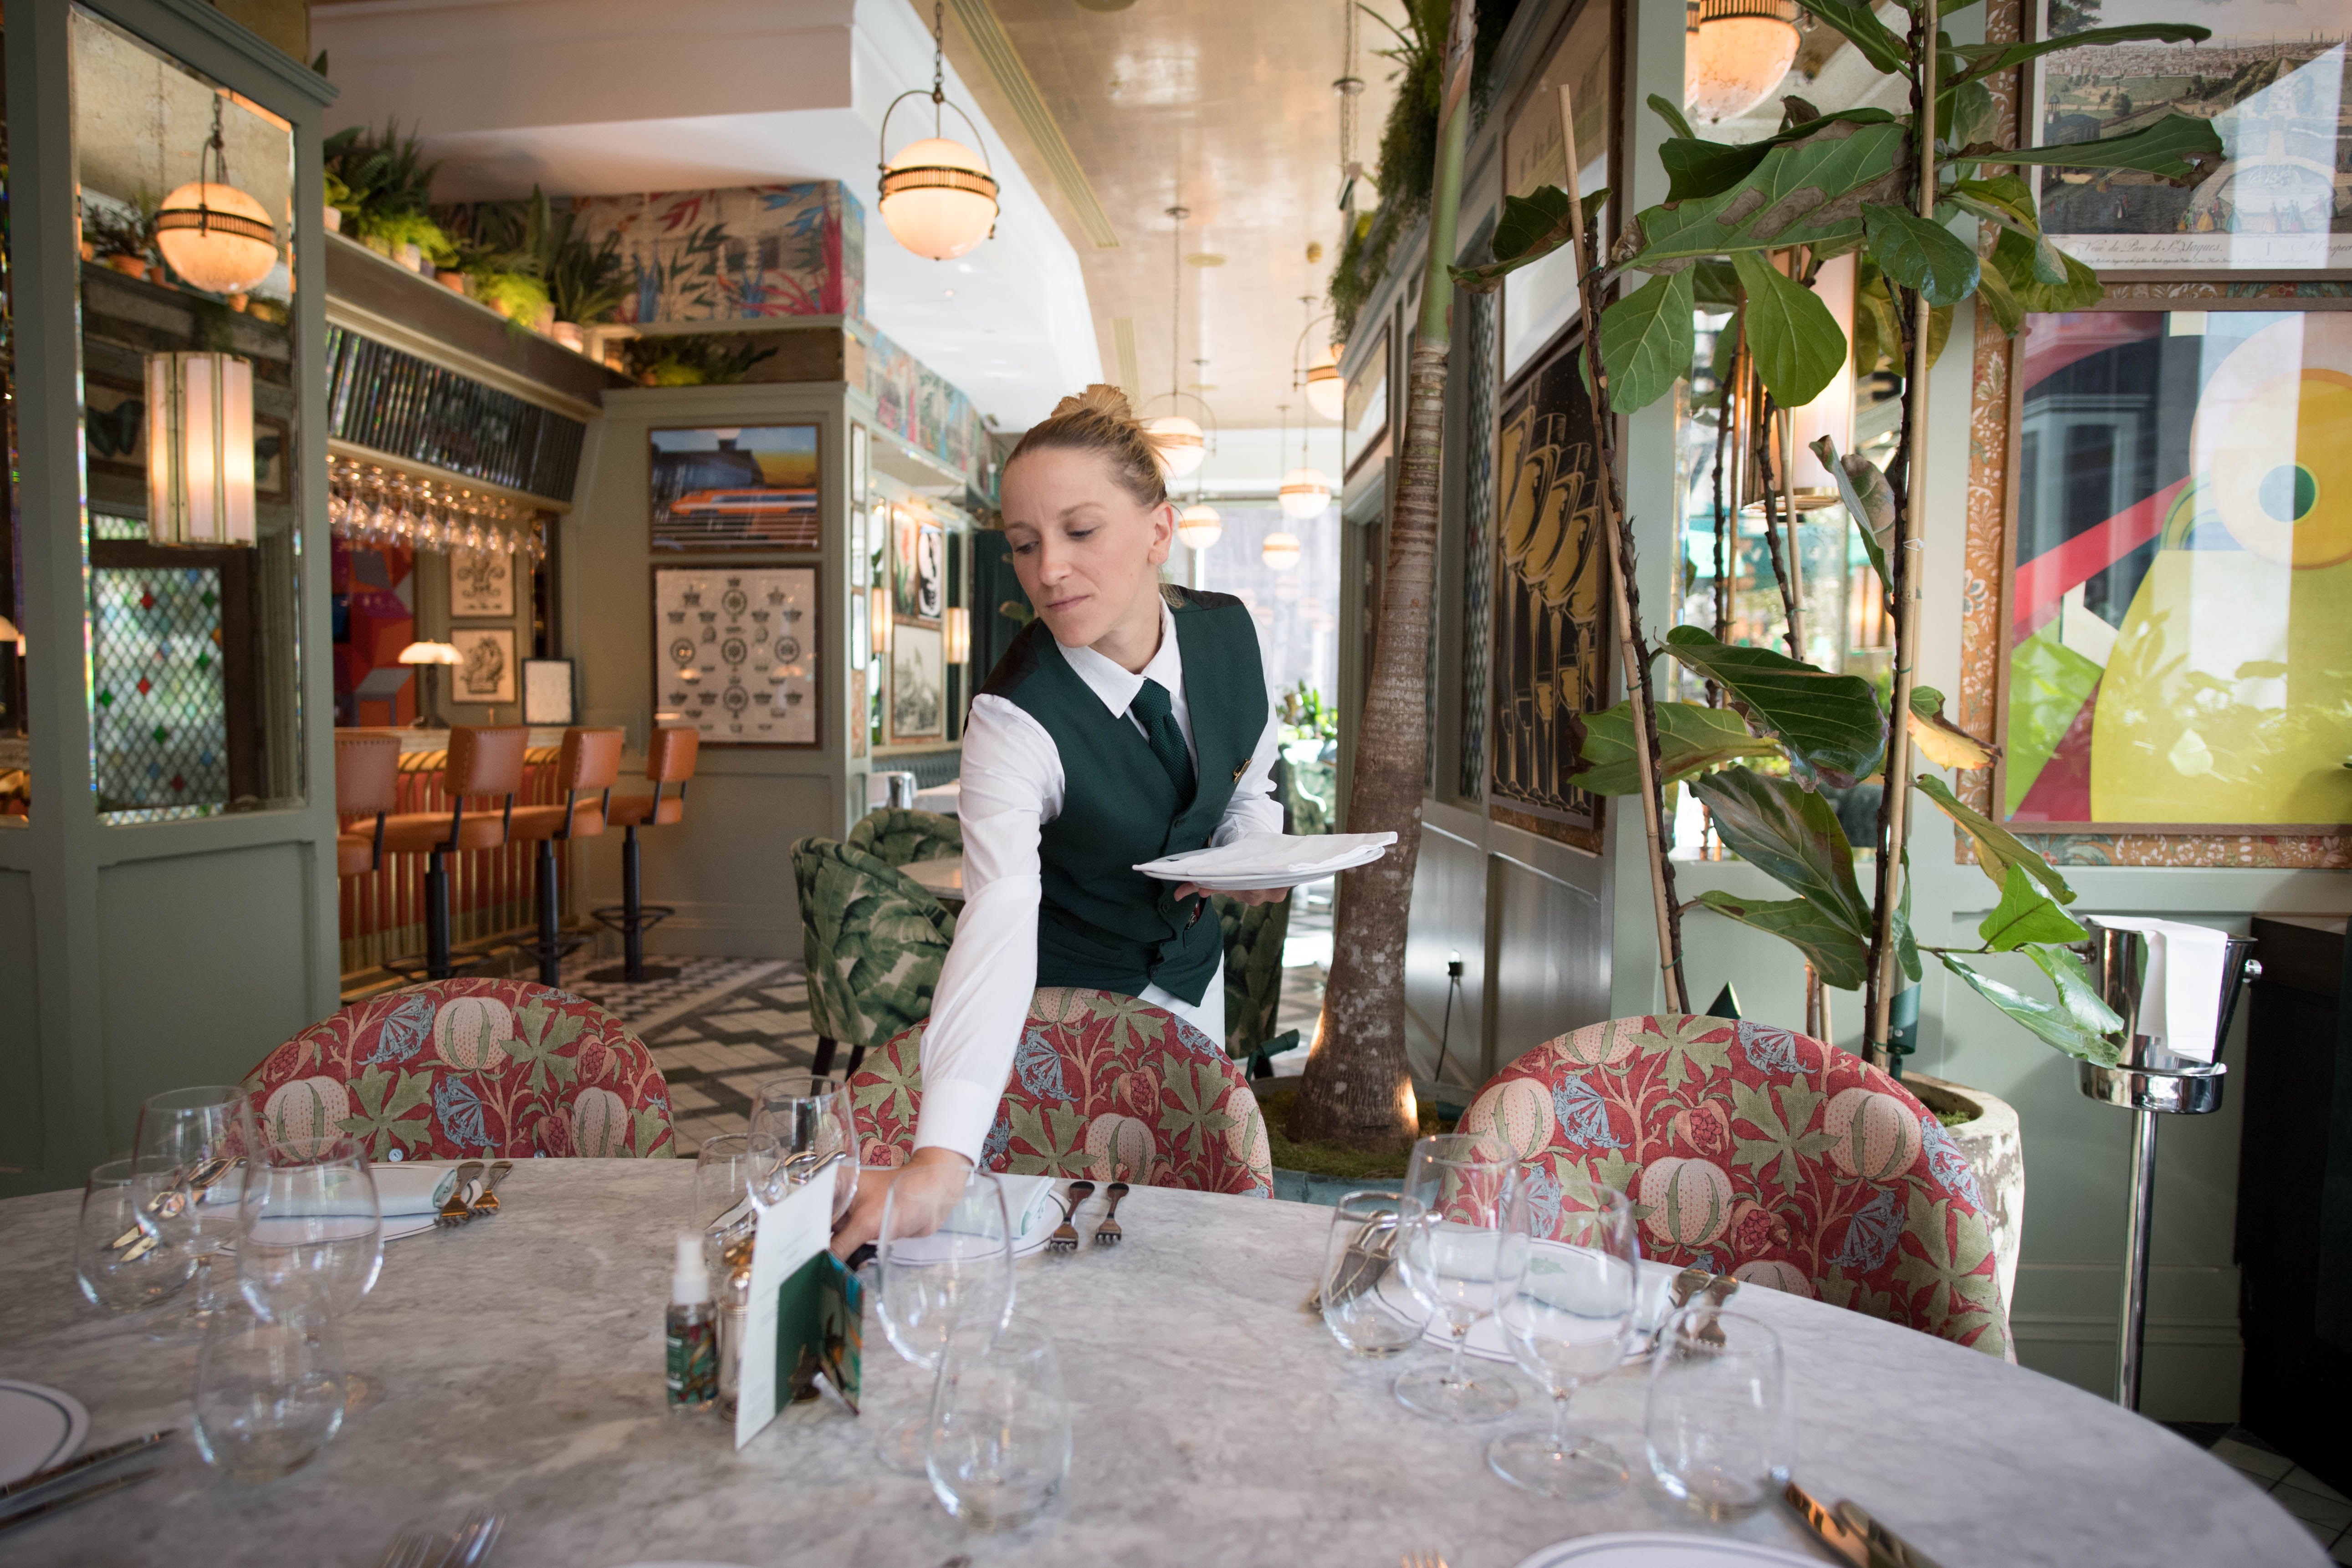 Staff at the Ivy Victoria in London, prepare the dining area, as the government initiative Eat Out to Help Out comes to an end. (Photo by Stefan Rousseau/PA Images via Getty Images)